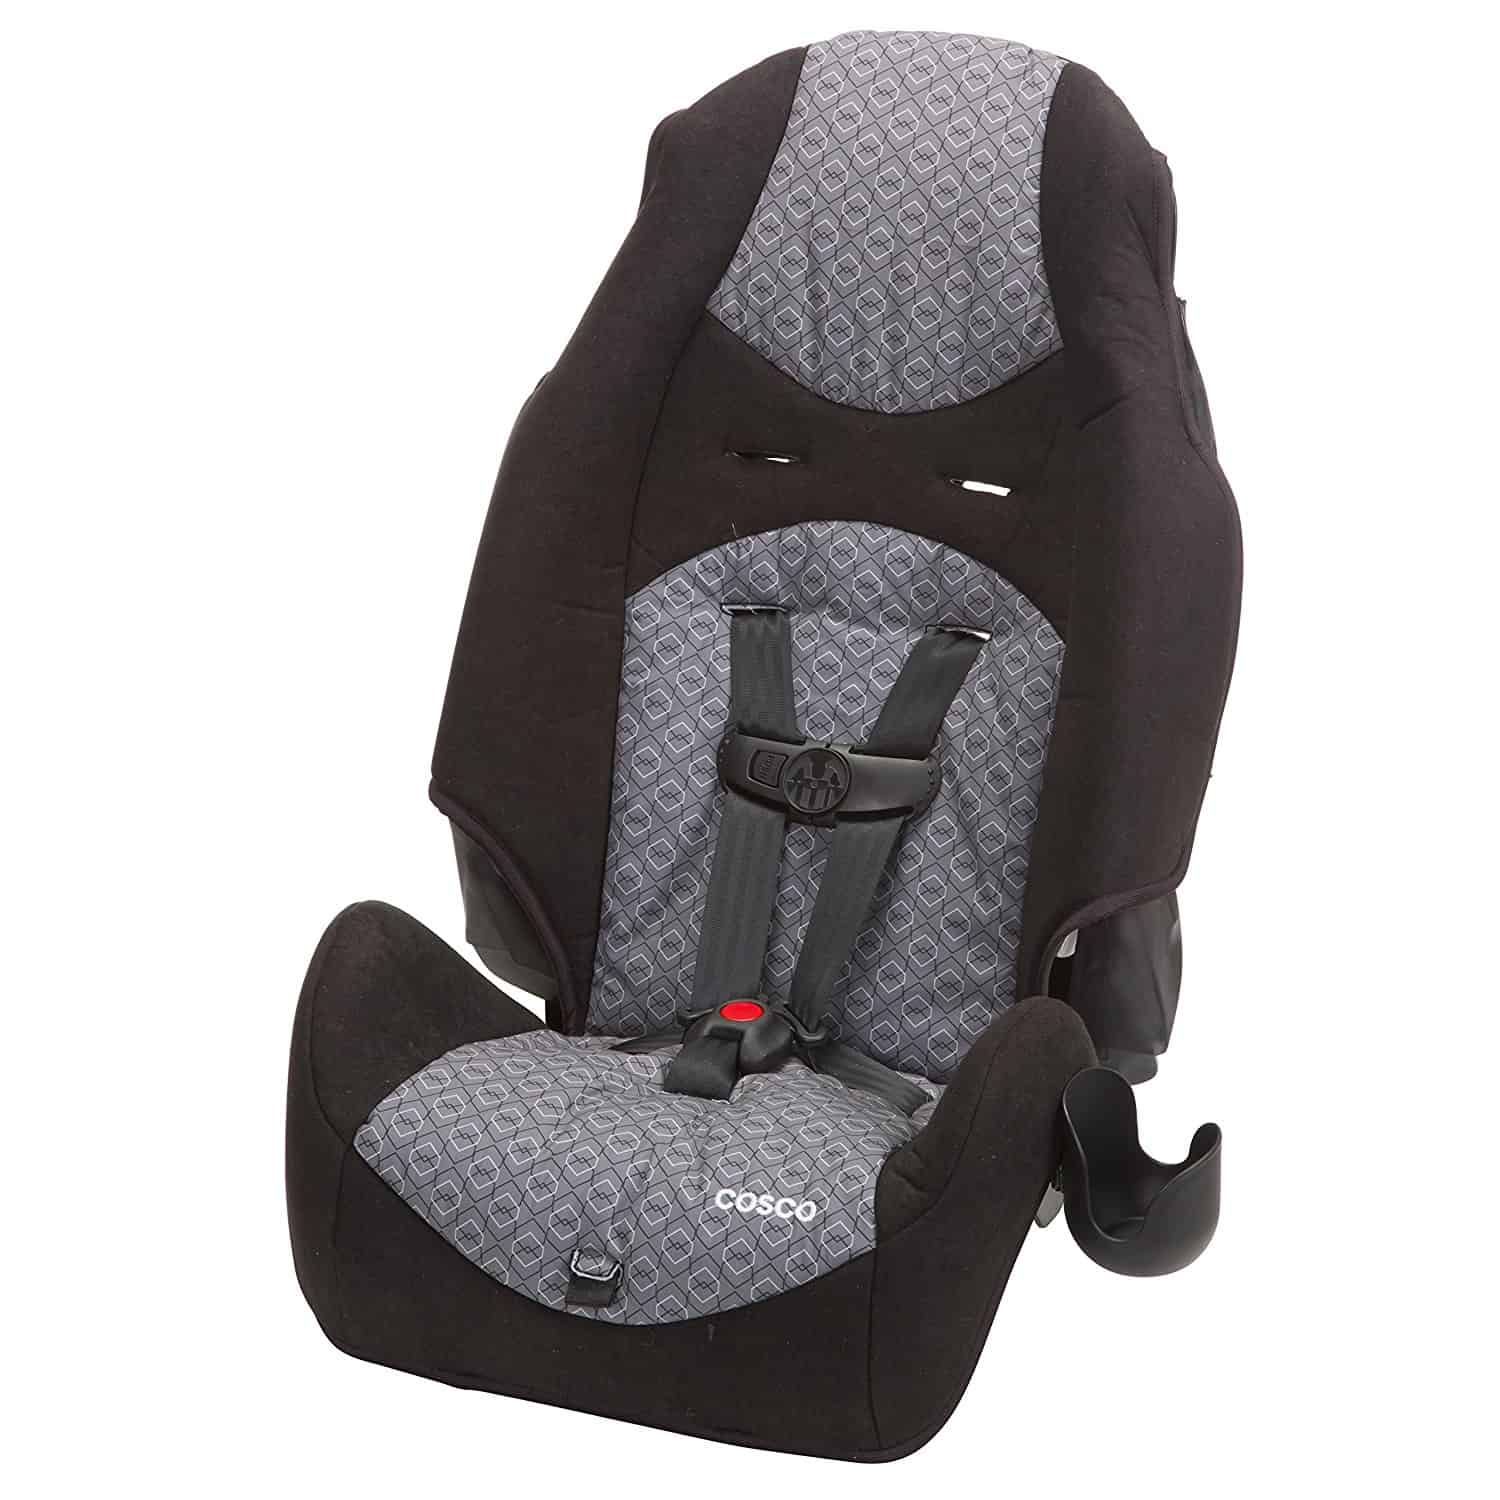 Cosco High Back Booster Car Seat Review